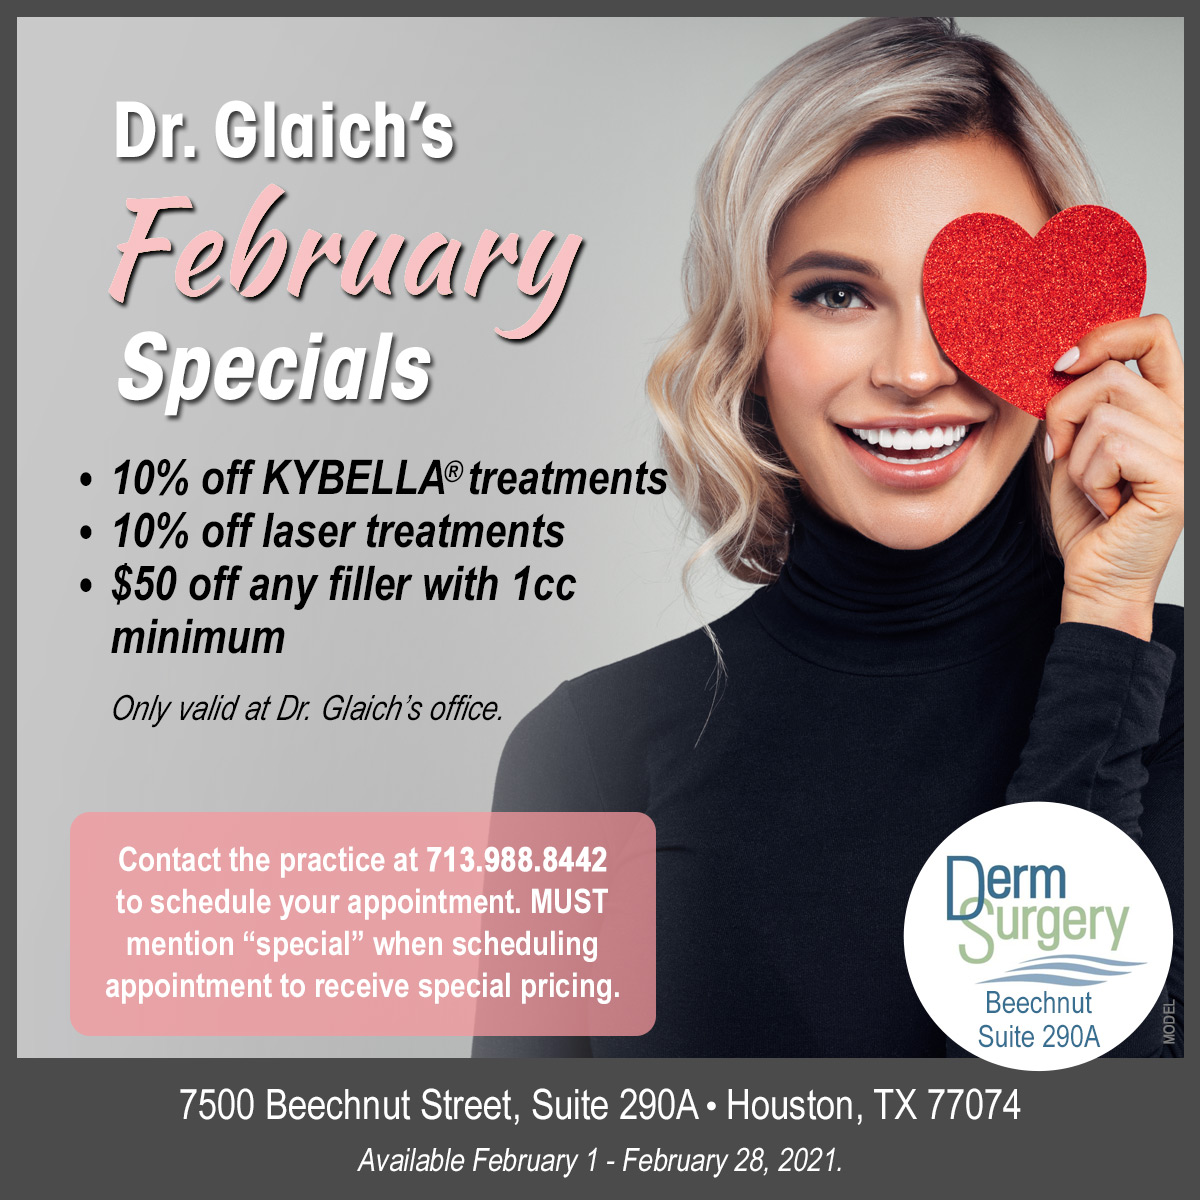 Dr. Glaich's February Special